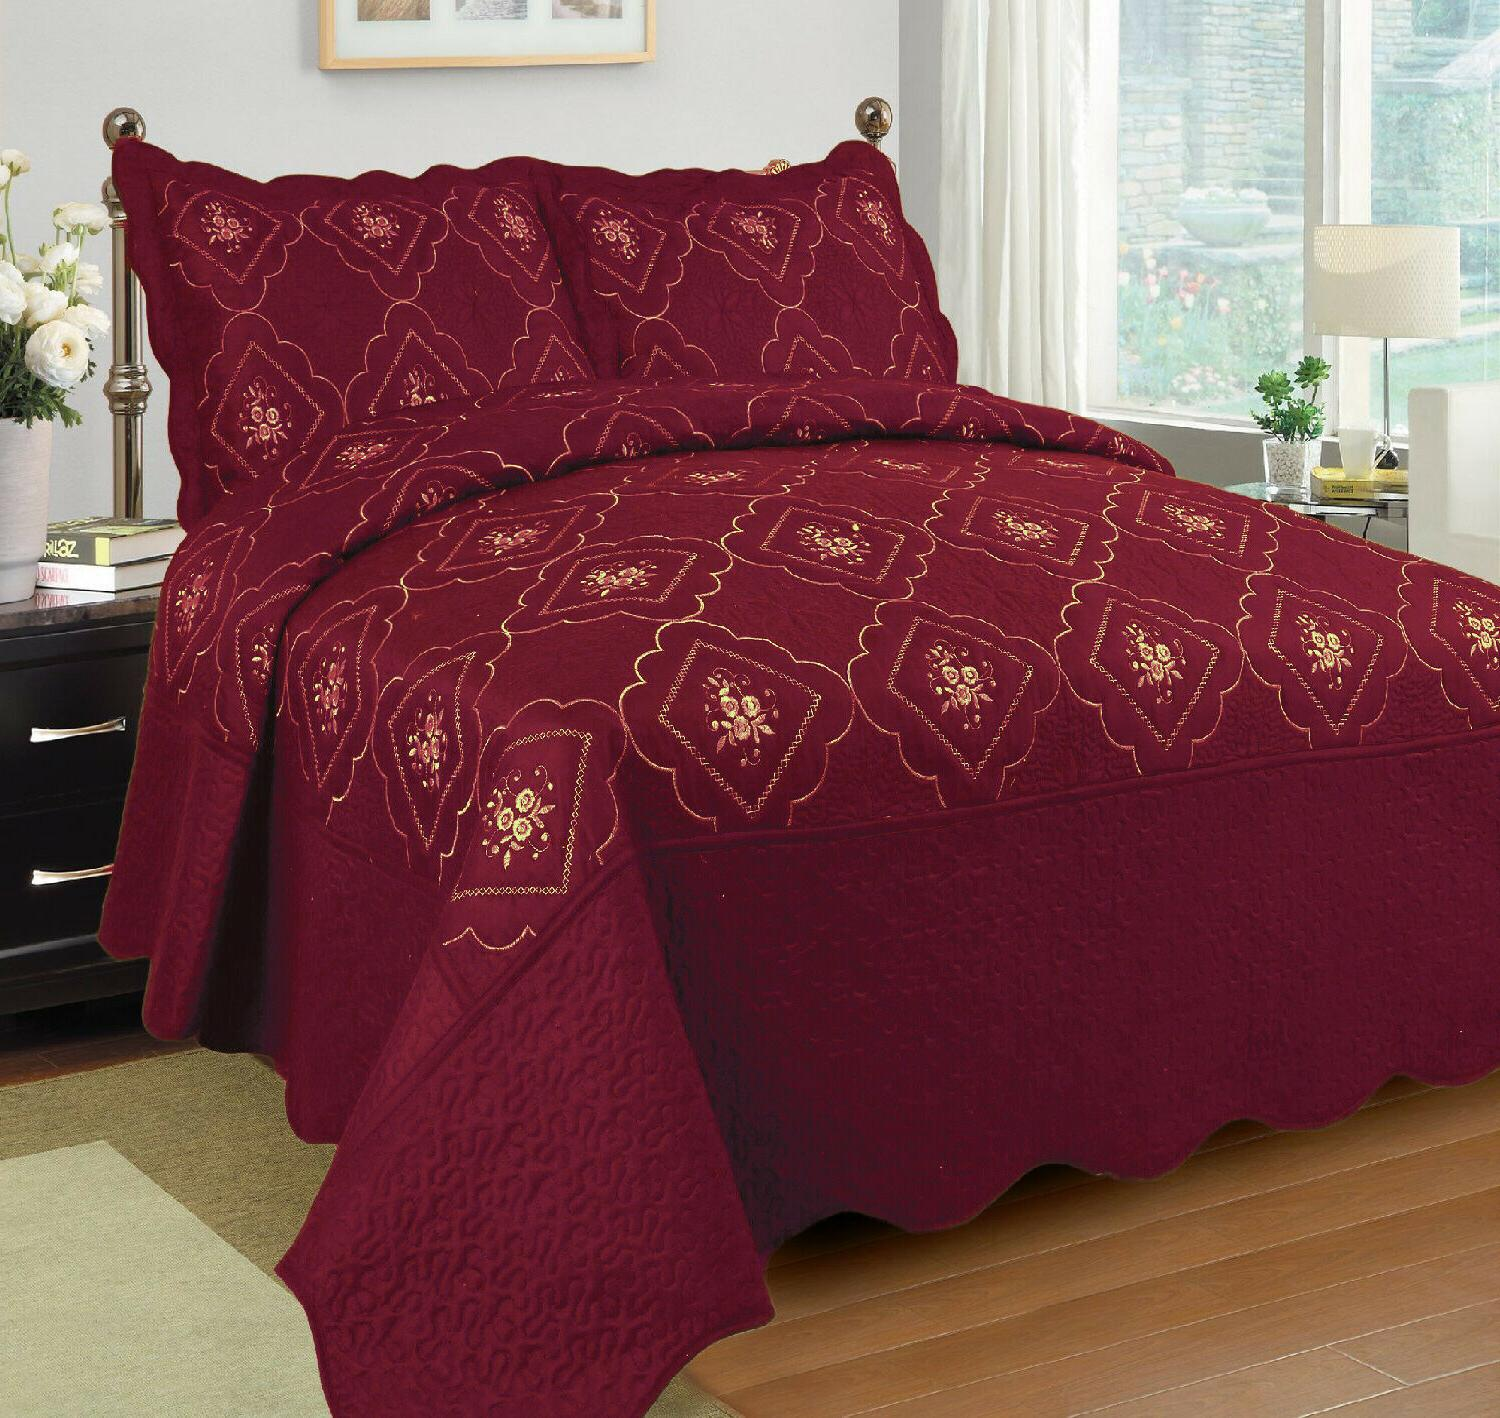 3 pcs polyester bedspread quilted bed cover